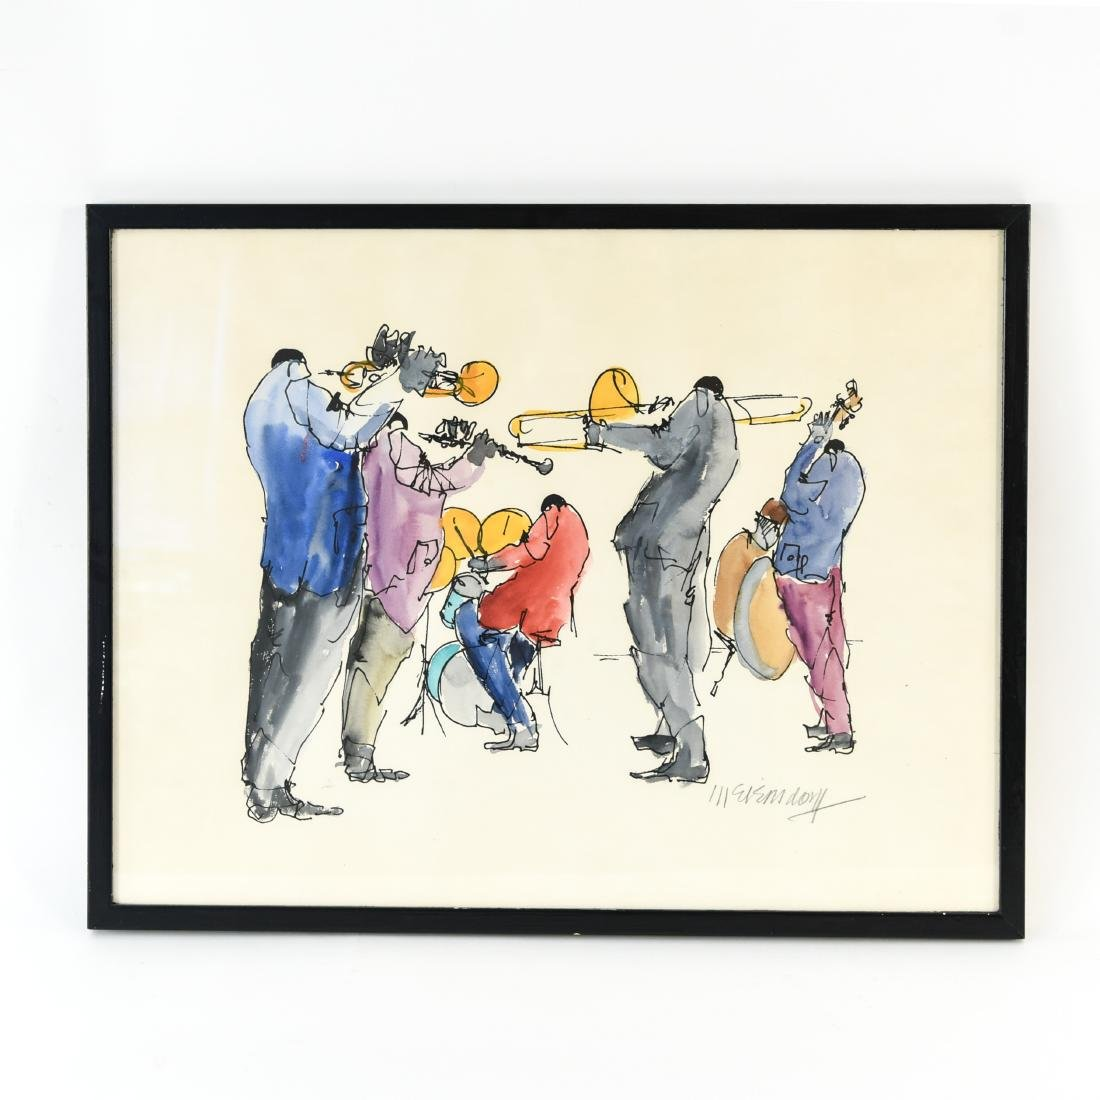 INK & WATERCOLOR OF JAZZ MUSICIANS